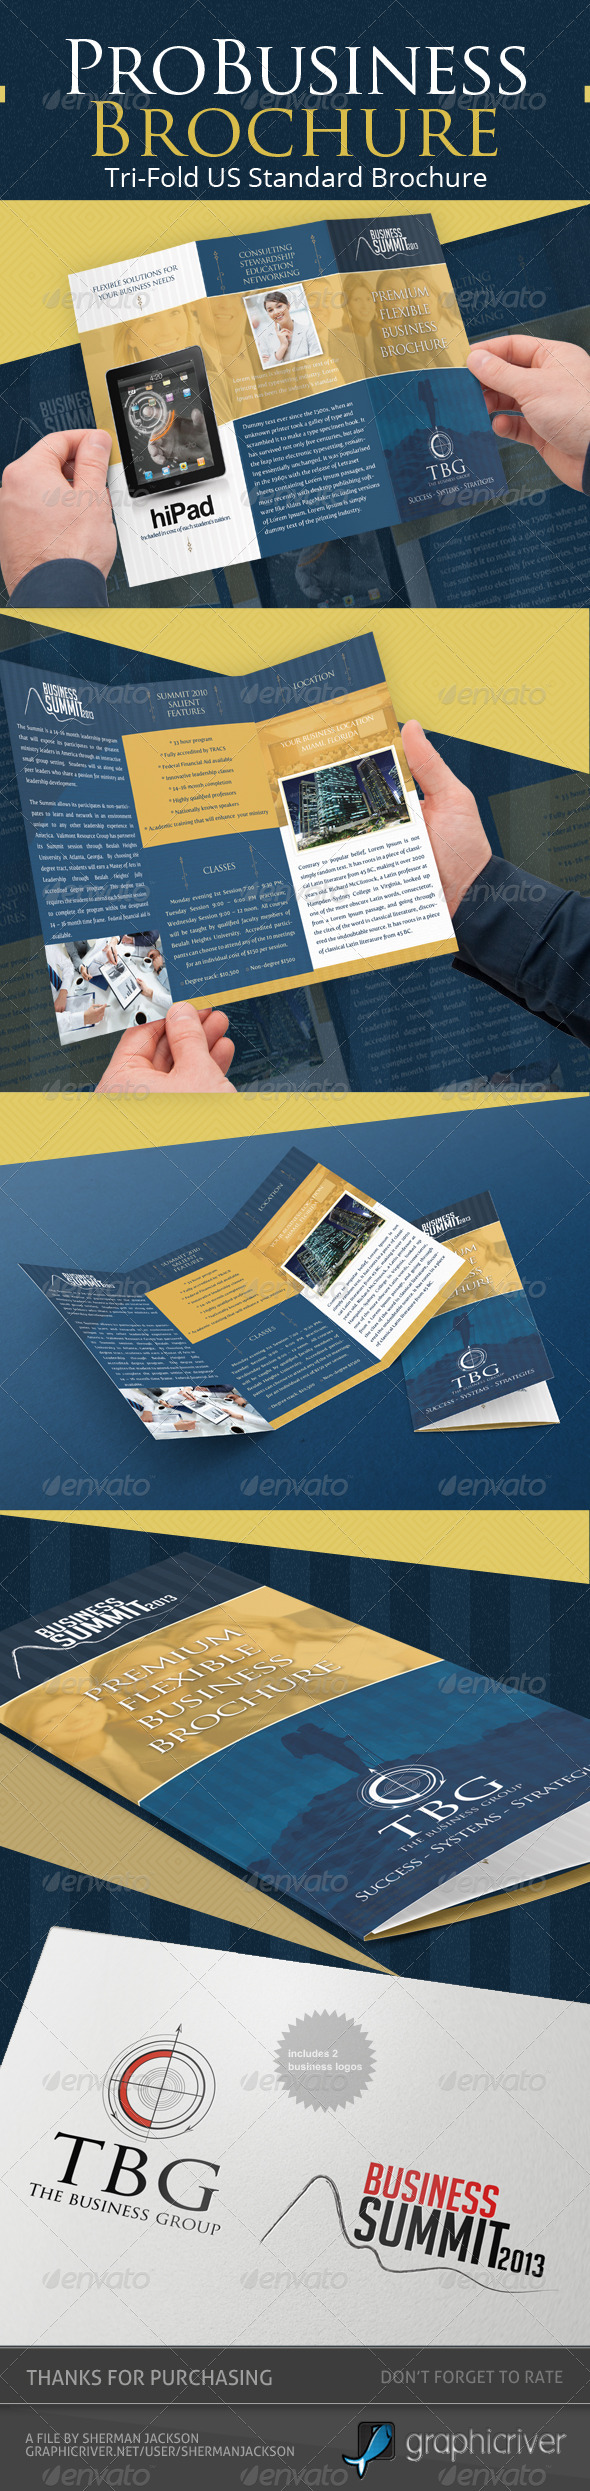 Pro Business Trifold Brochure PSD Template - Corporate Brochures